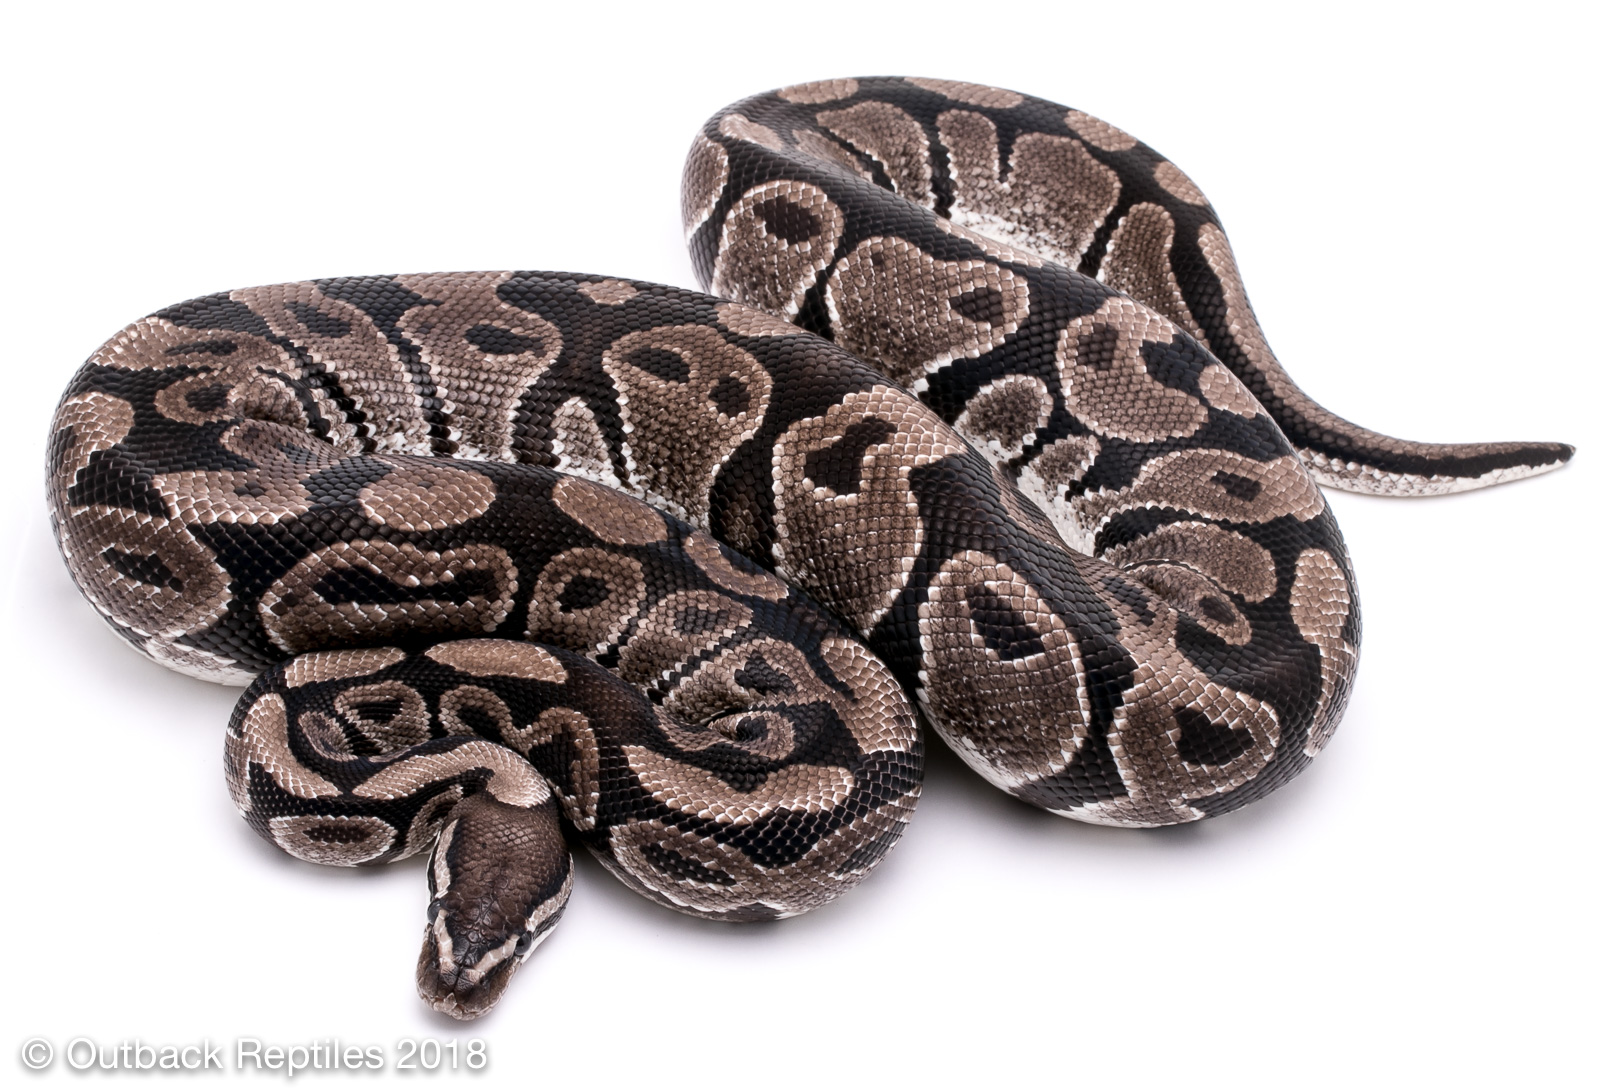 vpi axanthic male | Outback Reptiles